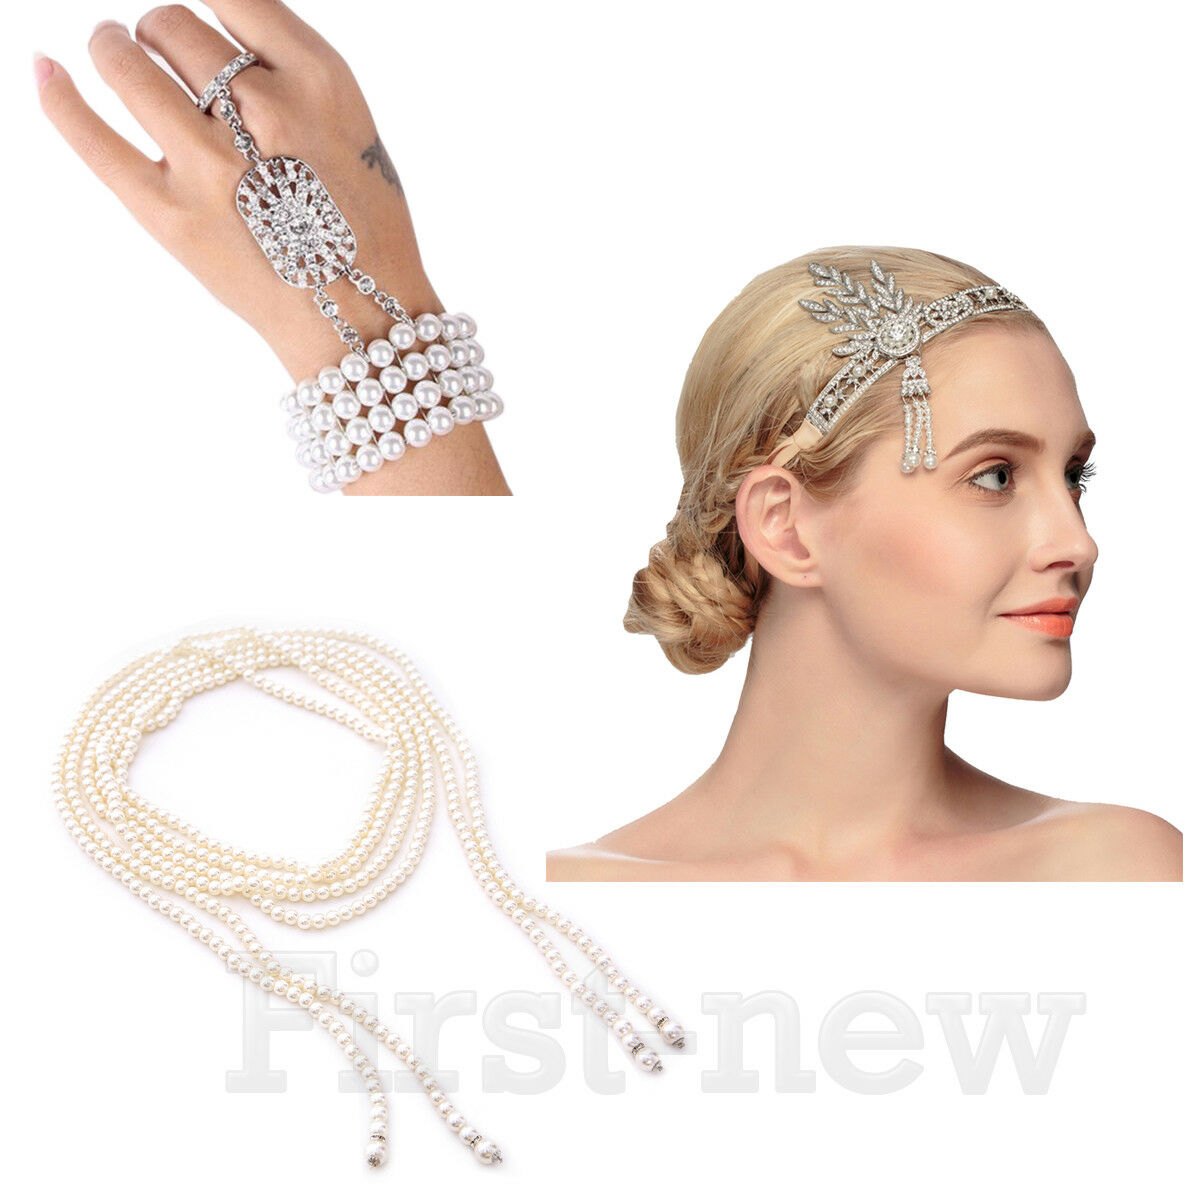 1920s Great Gatsby Headband Necklace Bracelet Ring Sets Bridal Hair Accessories